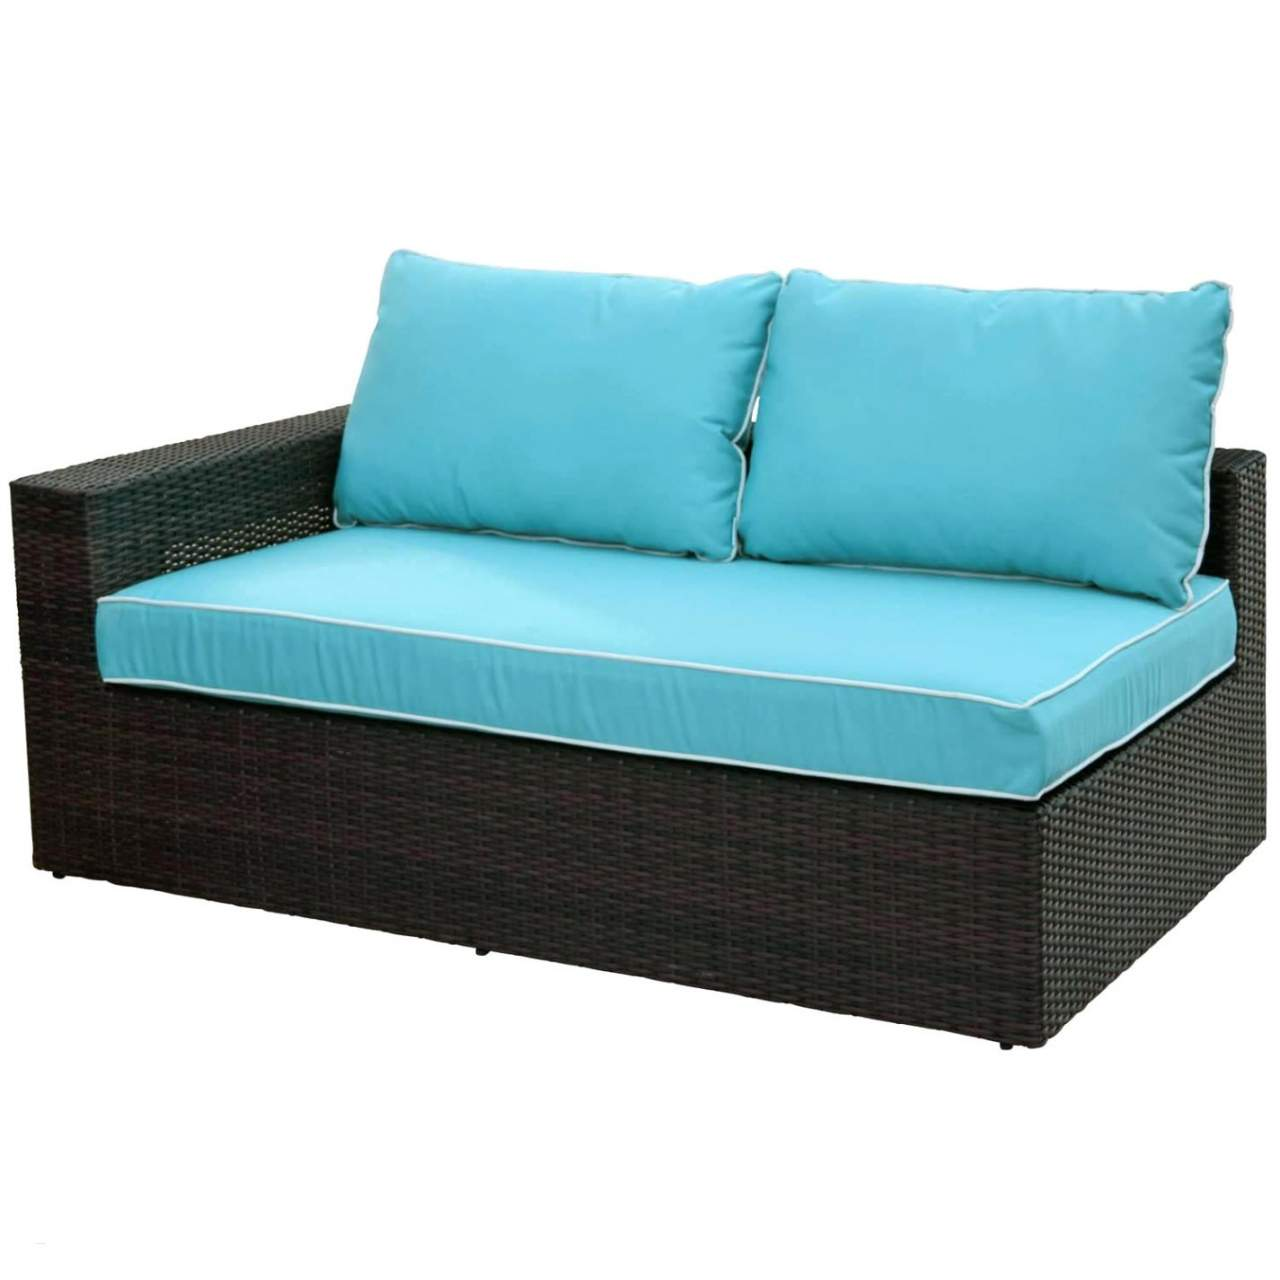 outdoor daybed daybed that looks like a sofa good outdoor daybed cushion luxury durch outdoor daybed